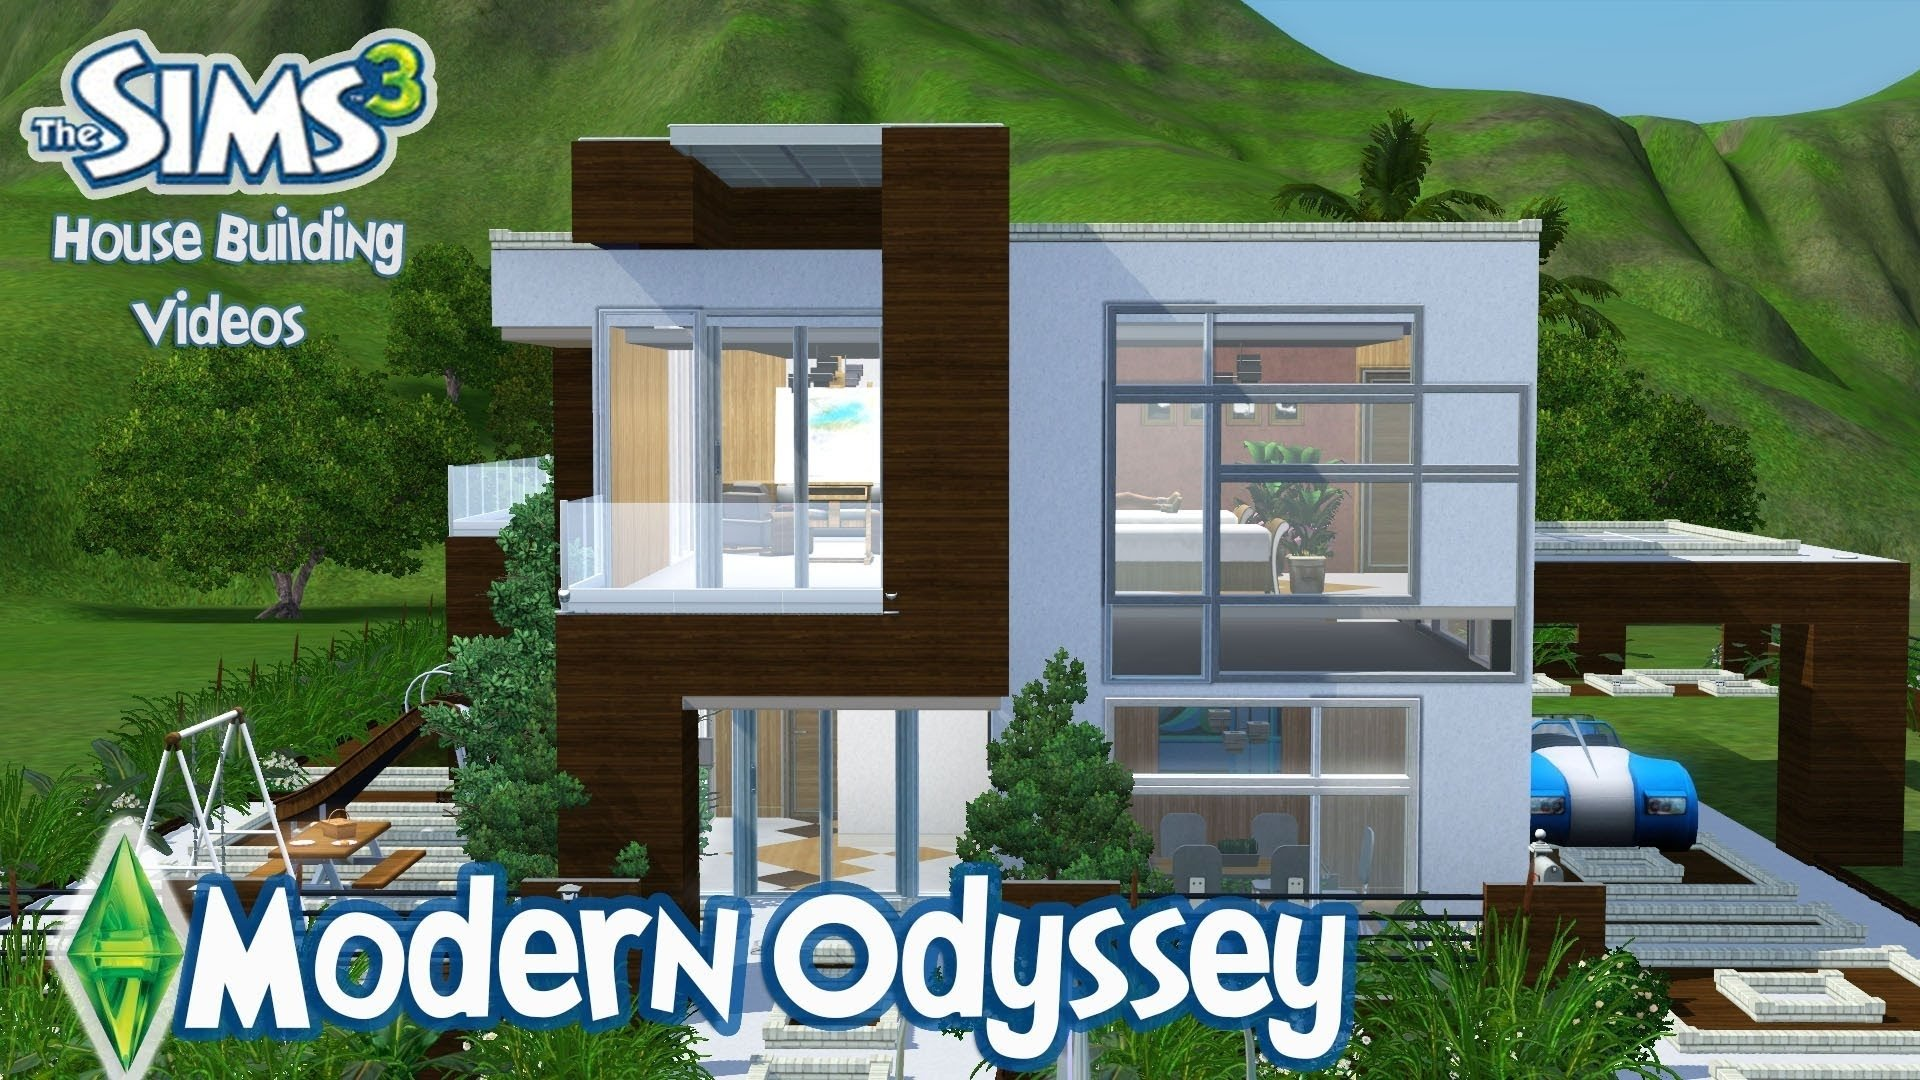 10 Stylish House Ideas For Sims 3 the sims 3 house designs modern odyssey youtube 2021